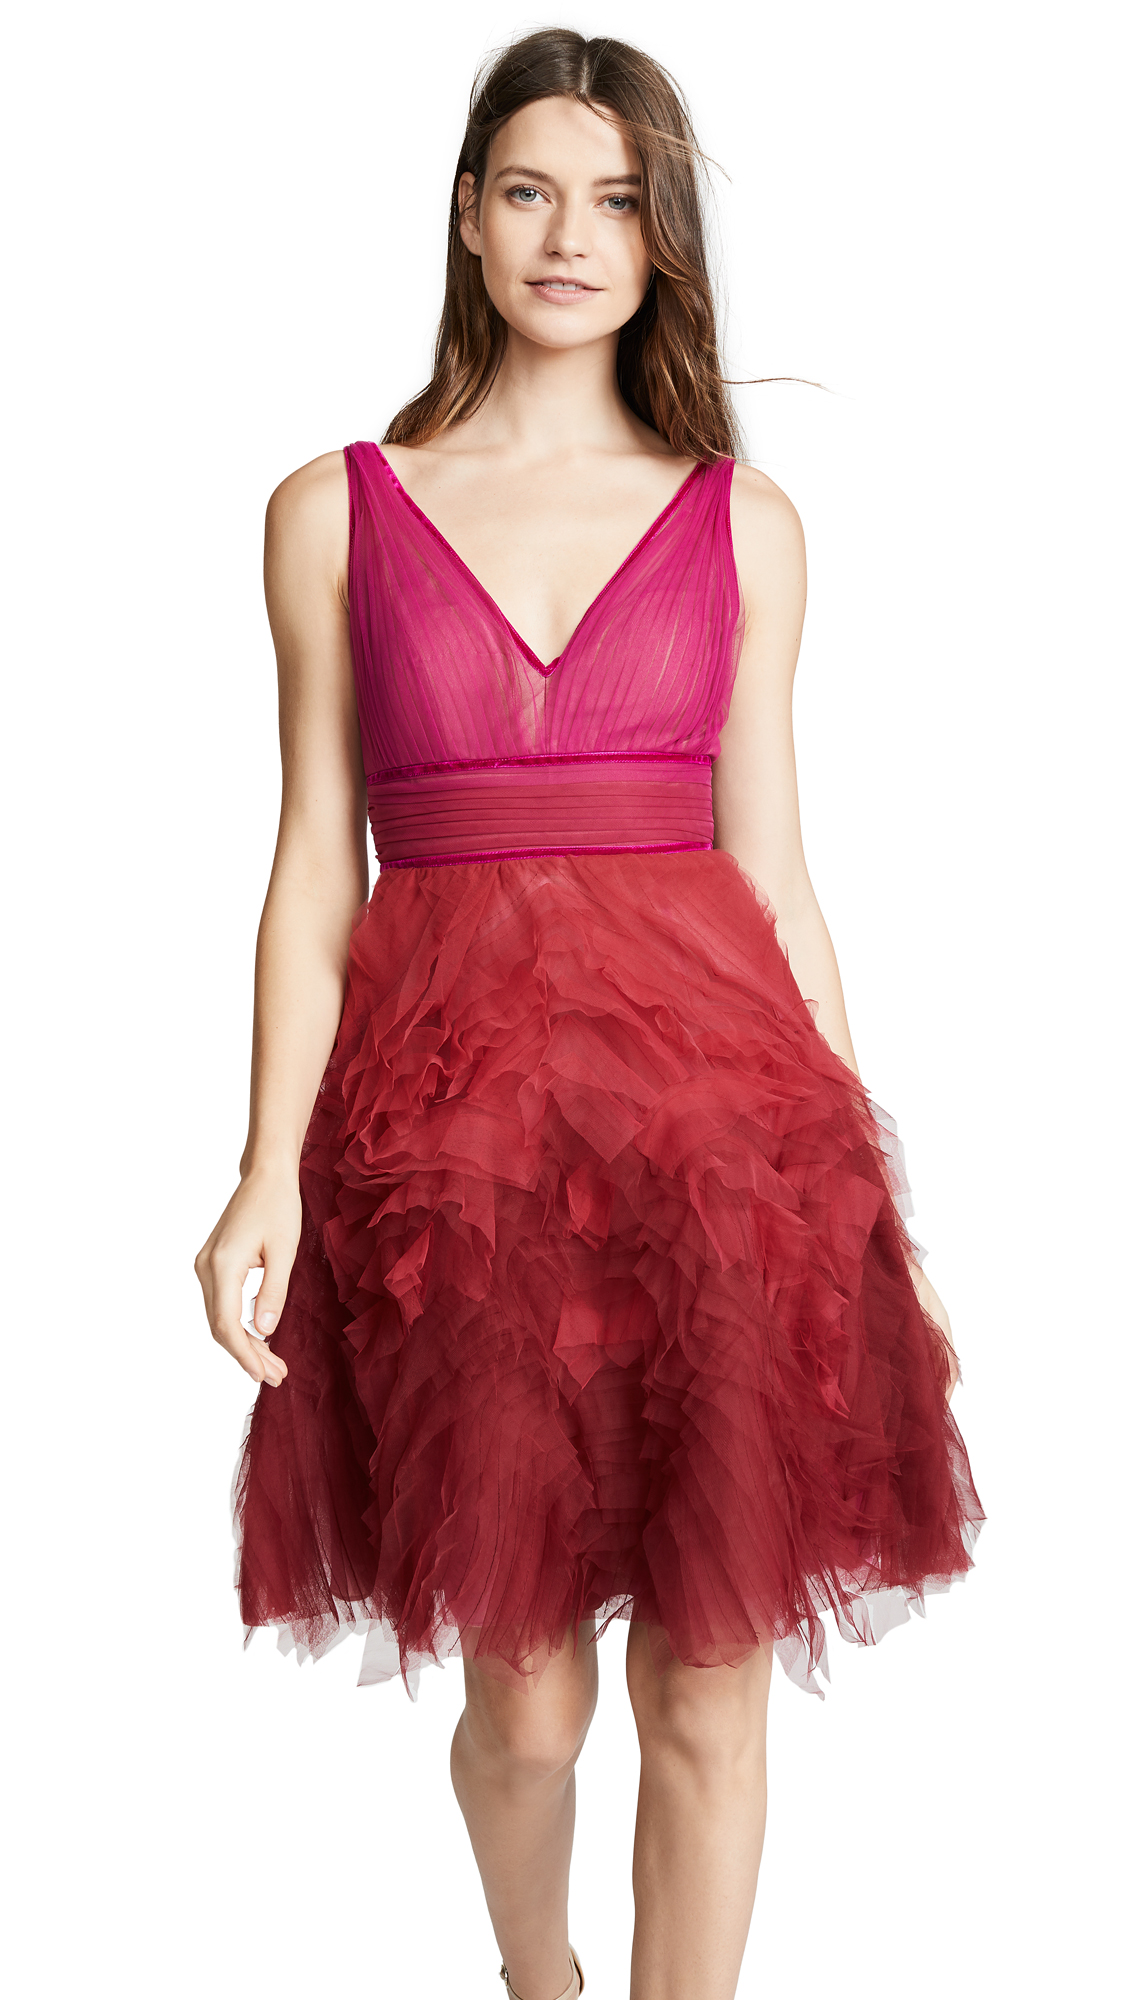 Marchesa Notte Ombre Cocktail Dress